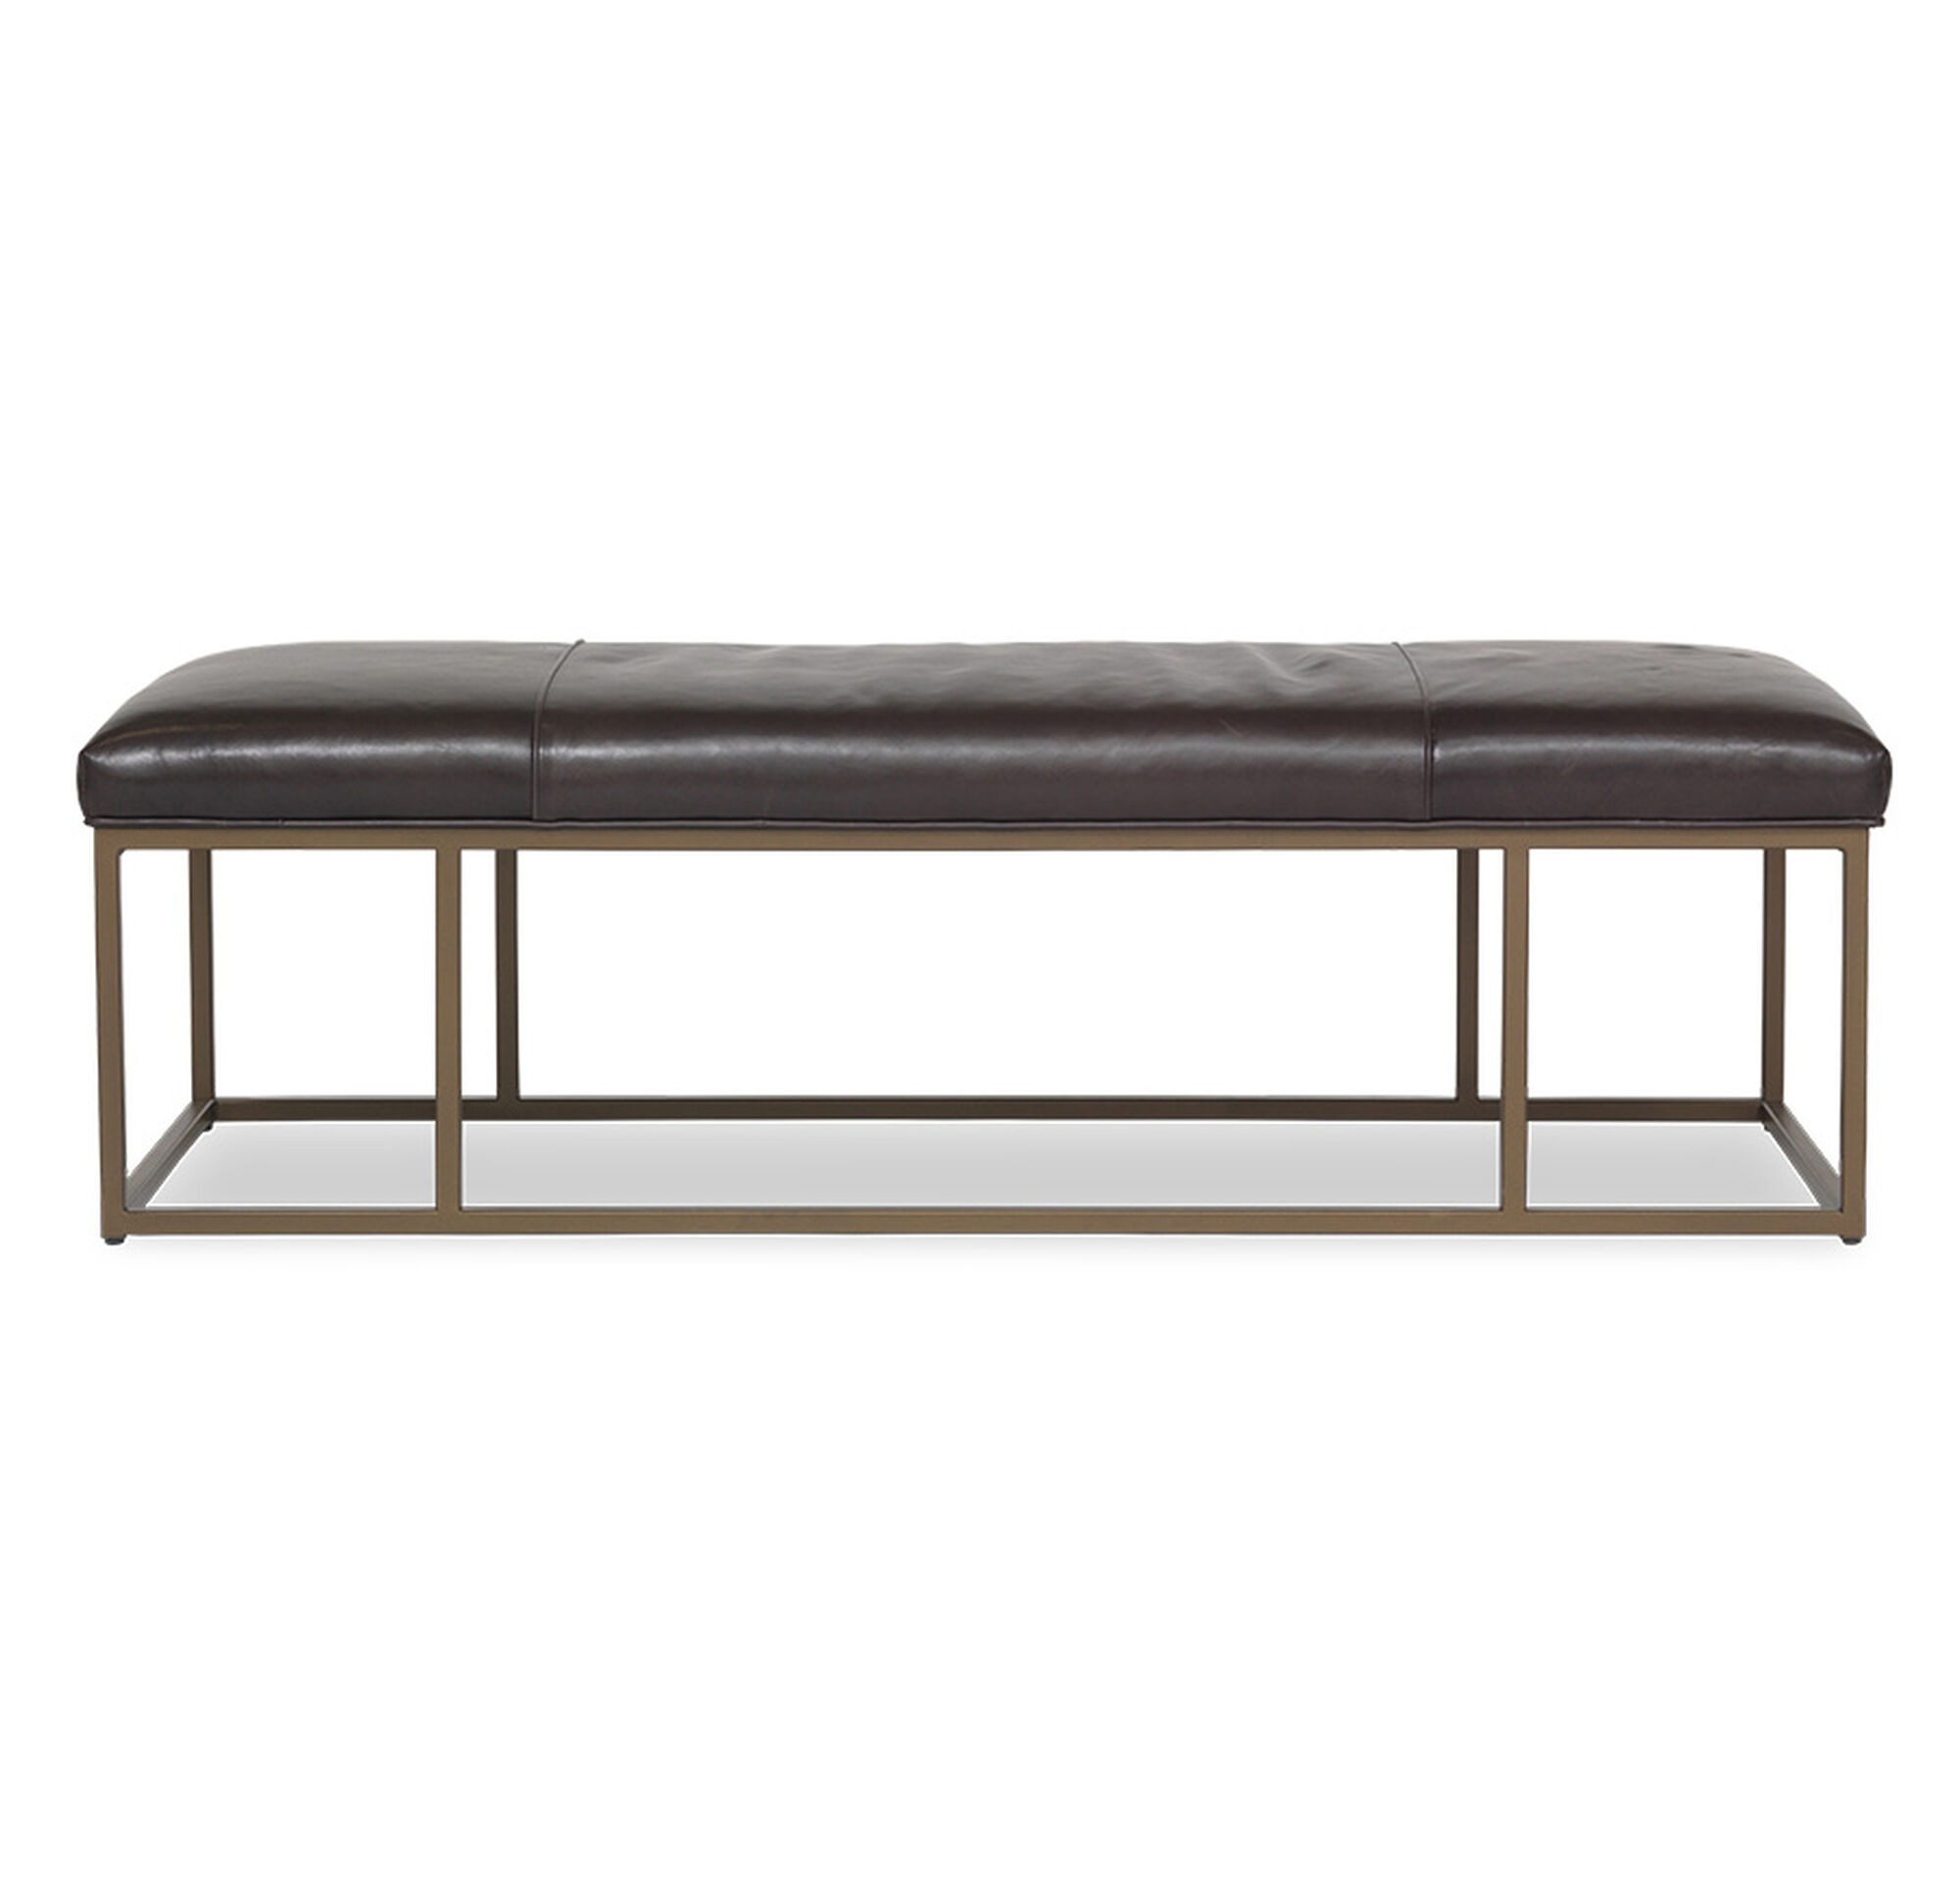 Hd Round Ottoman Coffee Table With Ottomans